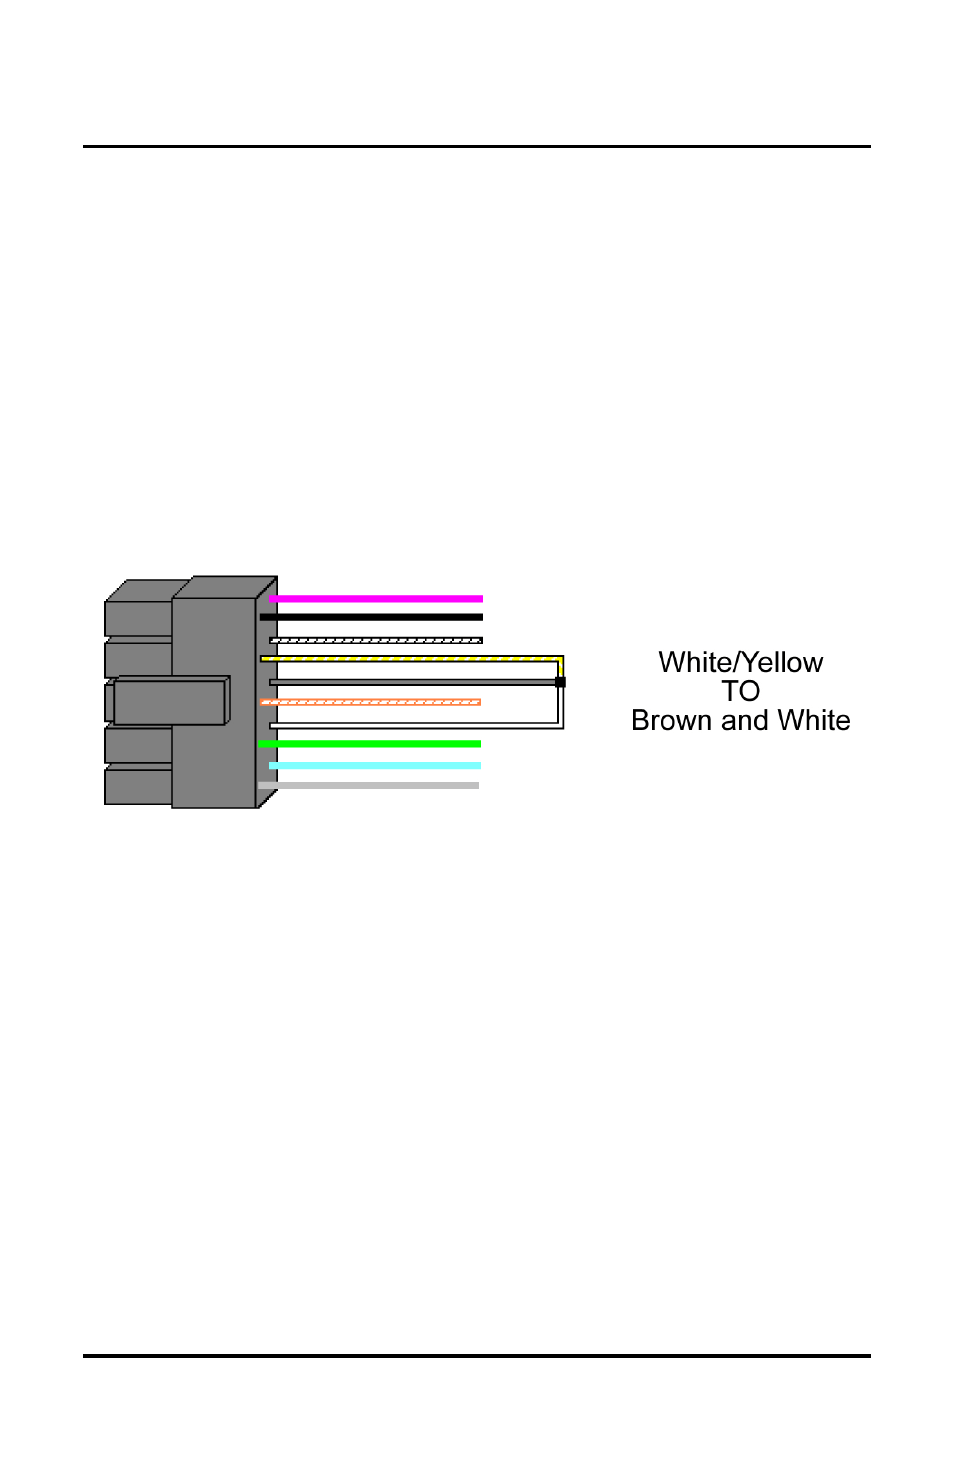 hight resolution of wire harness loopback connections controlled products systems group 212ilw user manual page 26 28